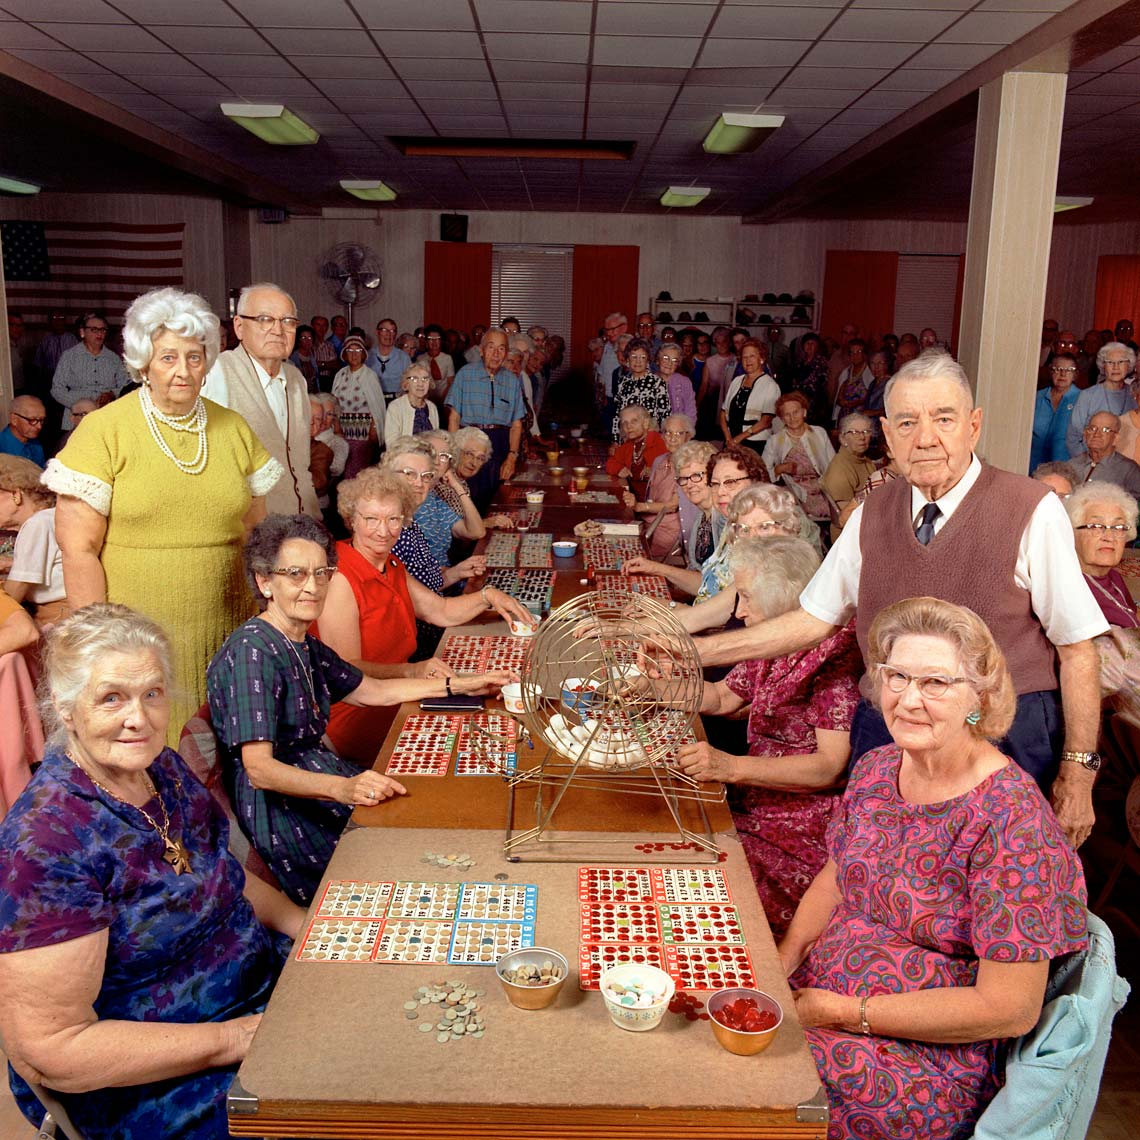 BINGO AND SHUFFLEBOARD CLUB OF ST. PETERSBURG; ST. PETERSBURG, FL